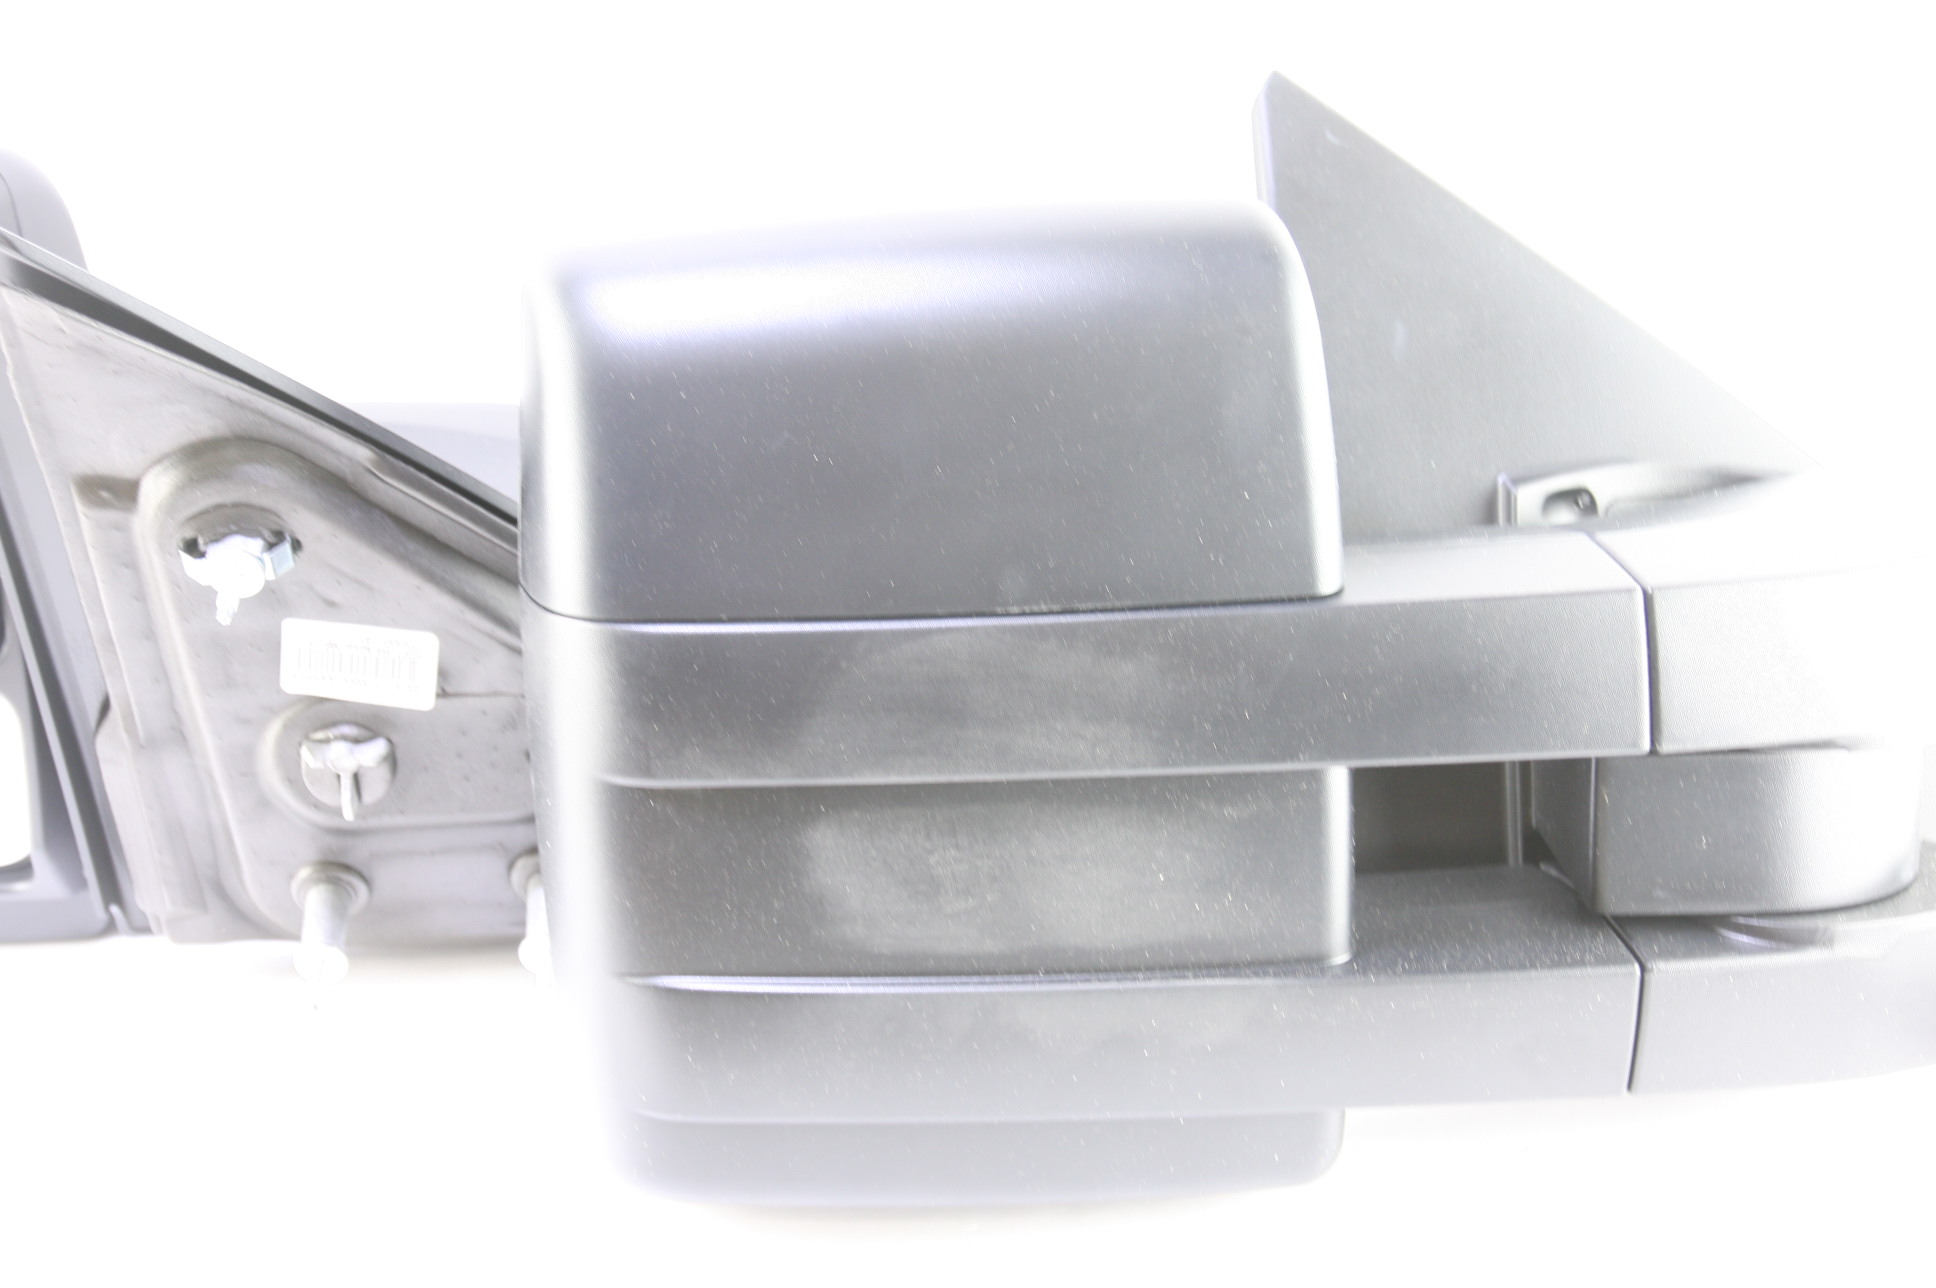 **New OEM DL3Z17696AA Ford 05-14 F-150 Manual Telescopic Trailer Tow Mirrors Set - image 12